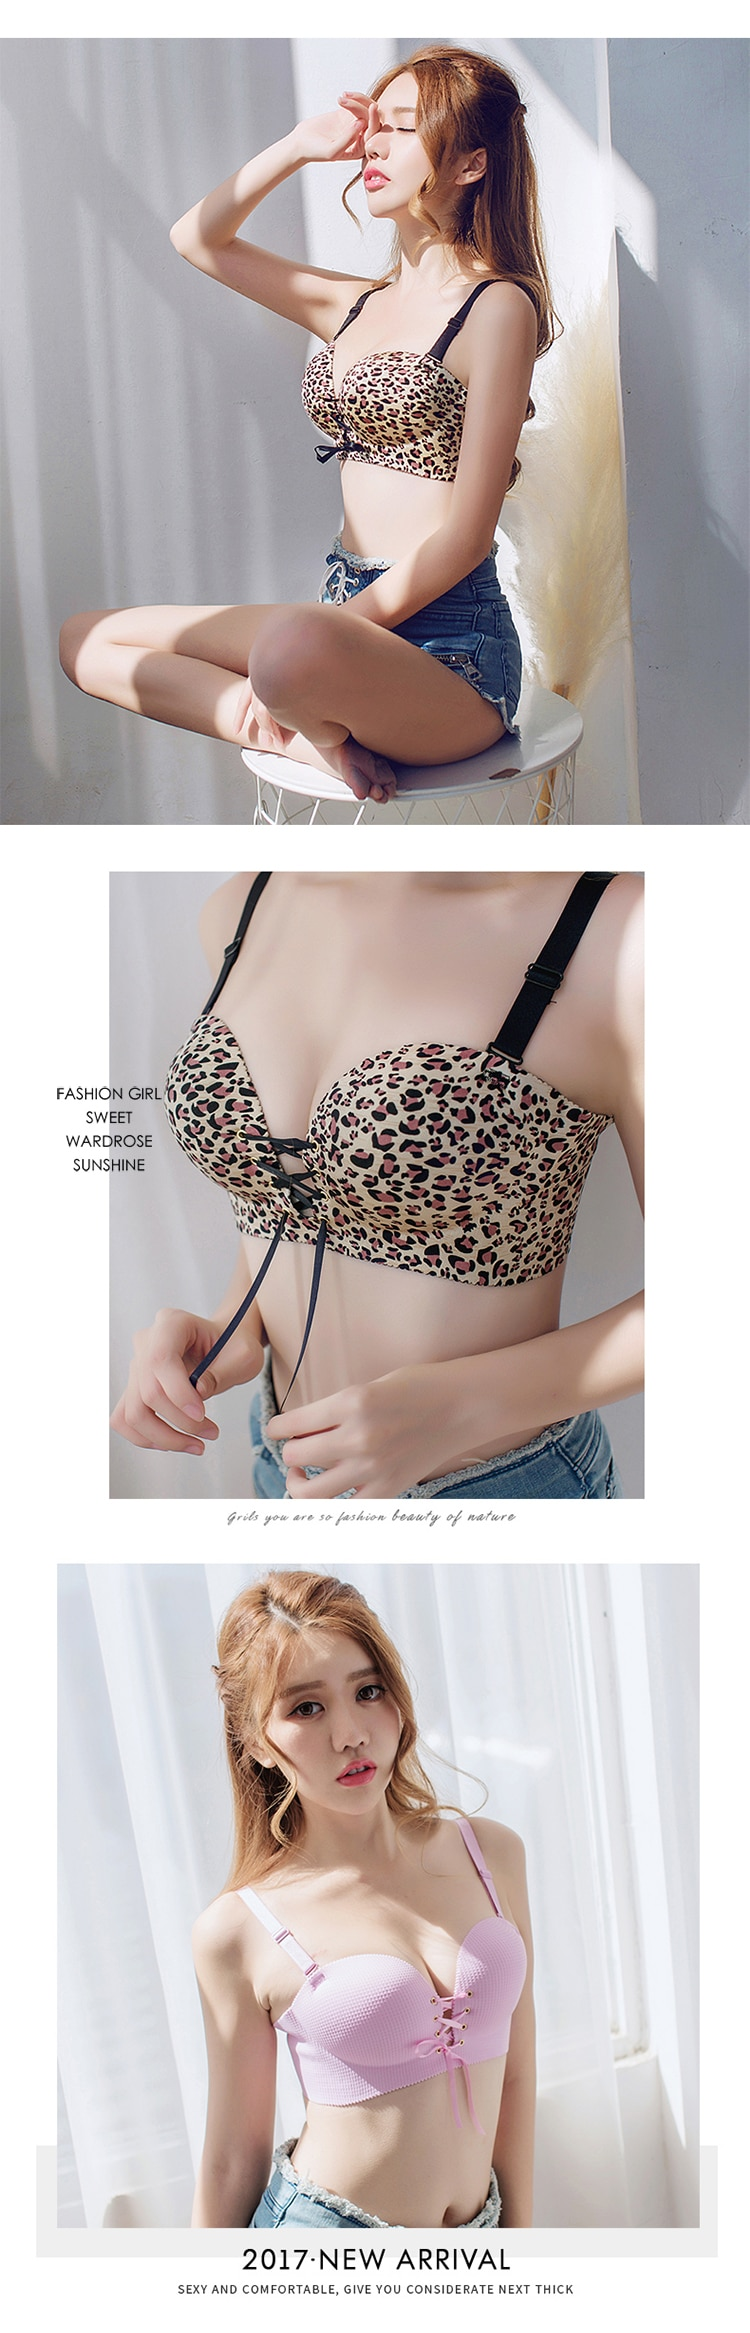 Fashion Sexy Bars Adjusted Seamless Lingerie Wire Free Bras For Women Push Up Bra Intimates